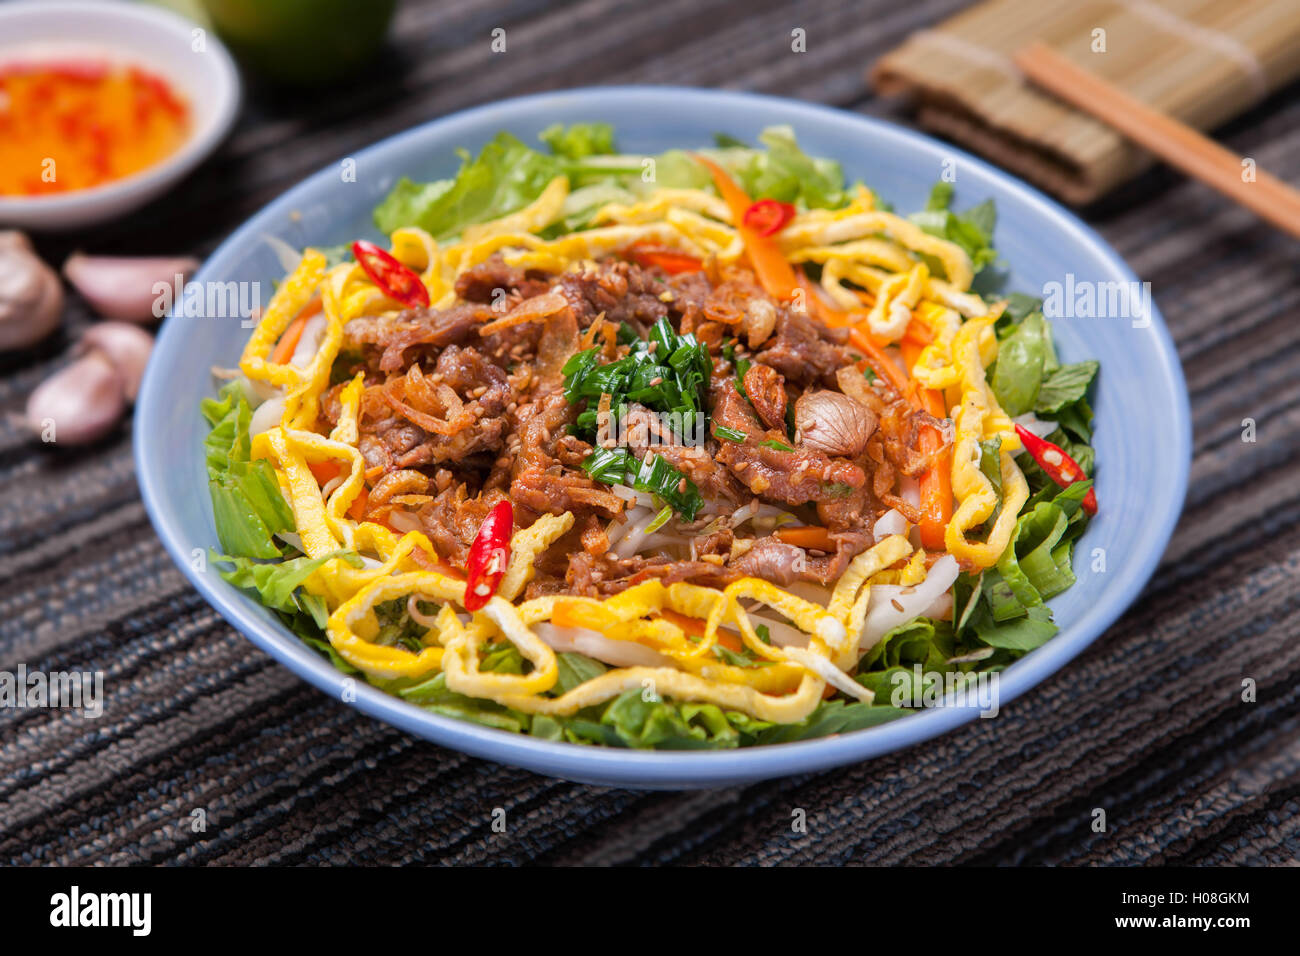 Fried rice mixed with beef Stock Photo